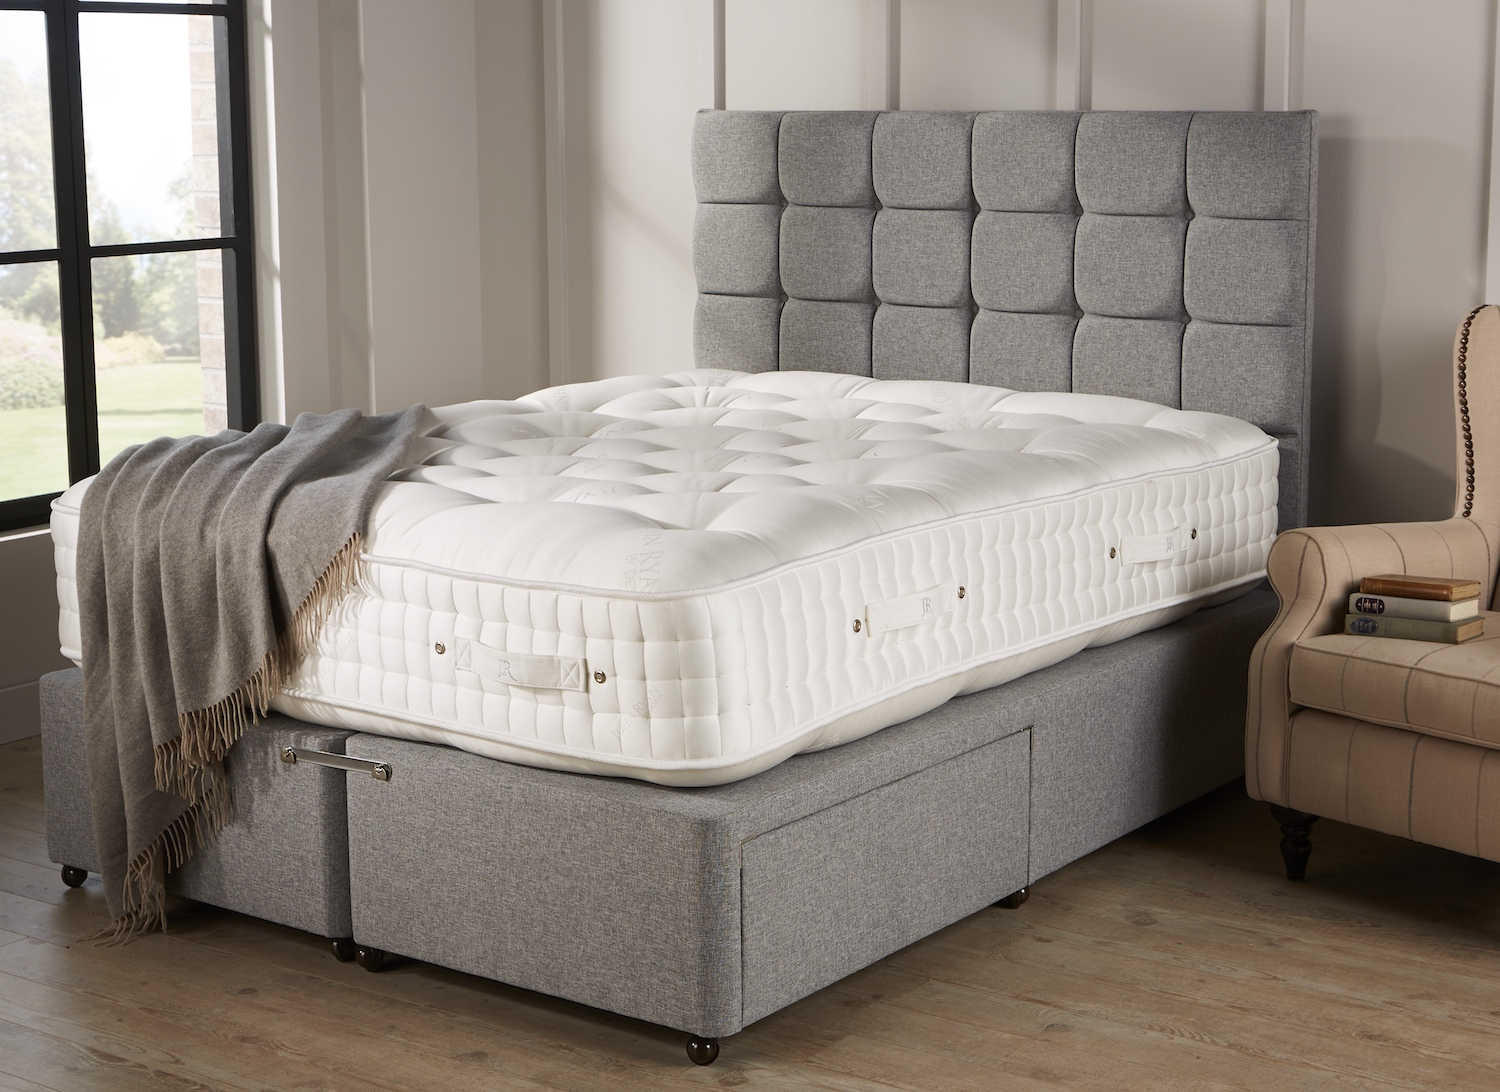 Soft, Medium or Firm Mattress, Which is Best For You? | John Ryan By